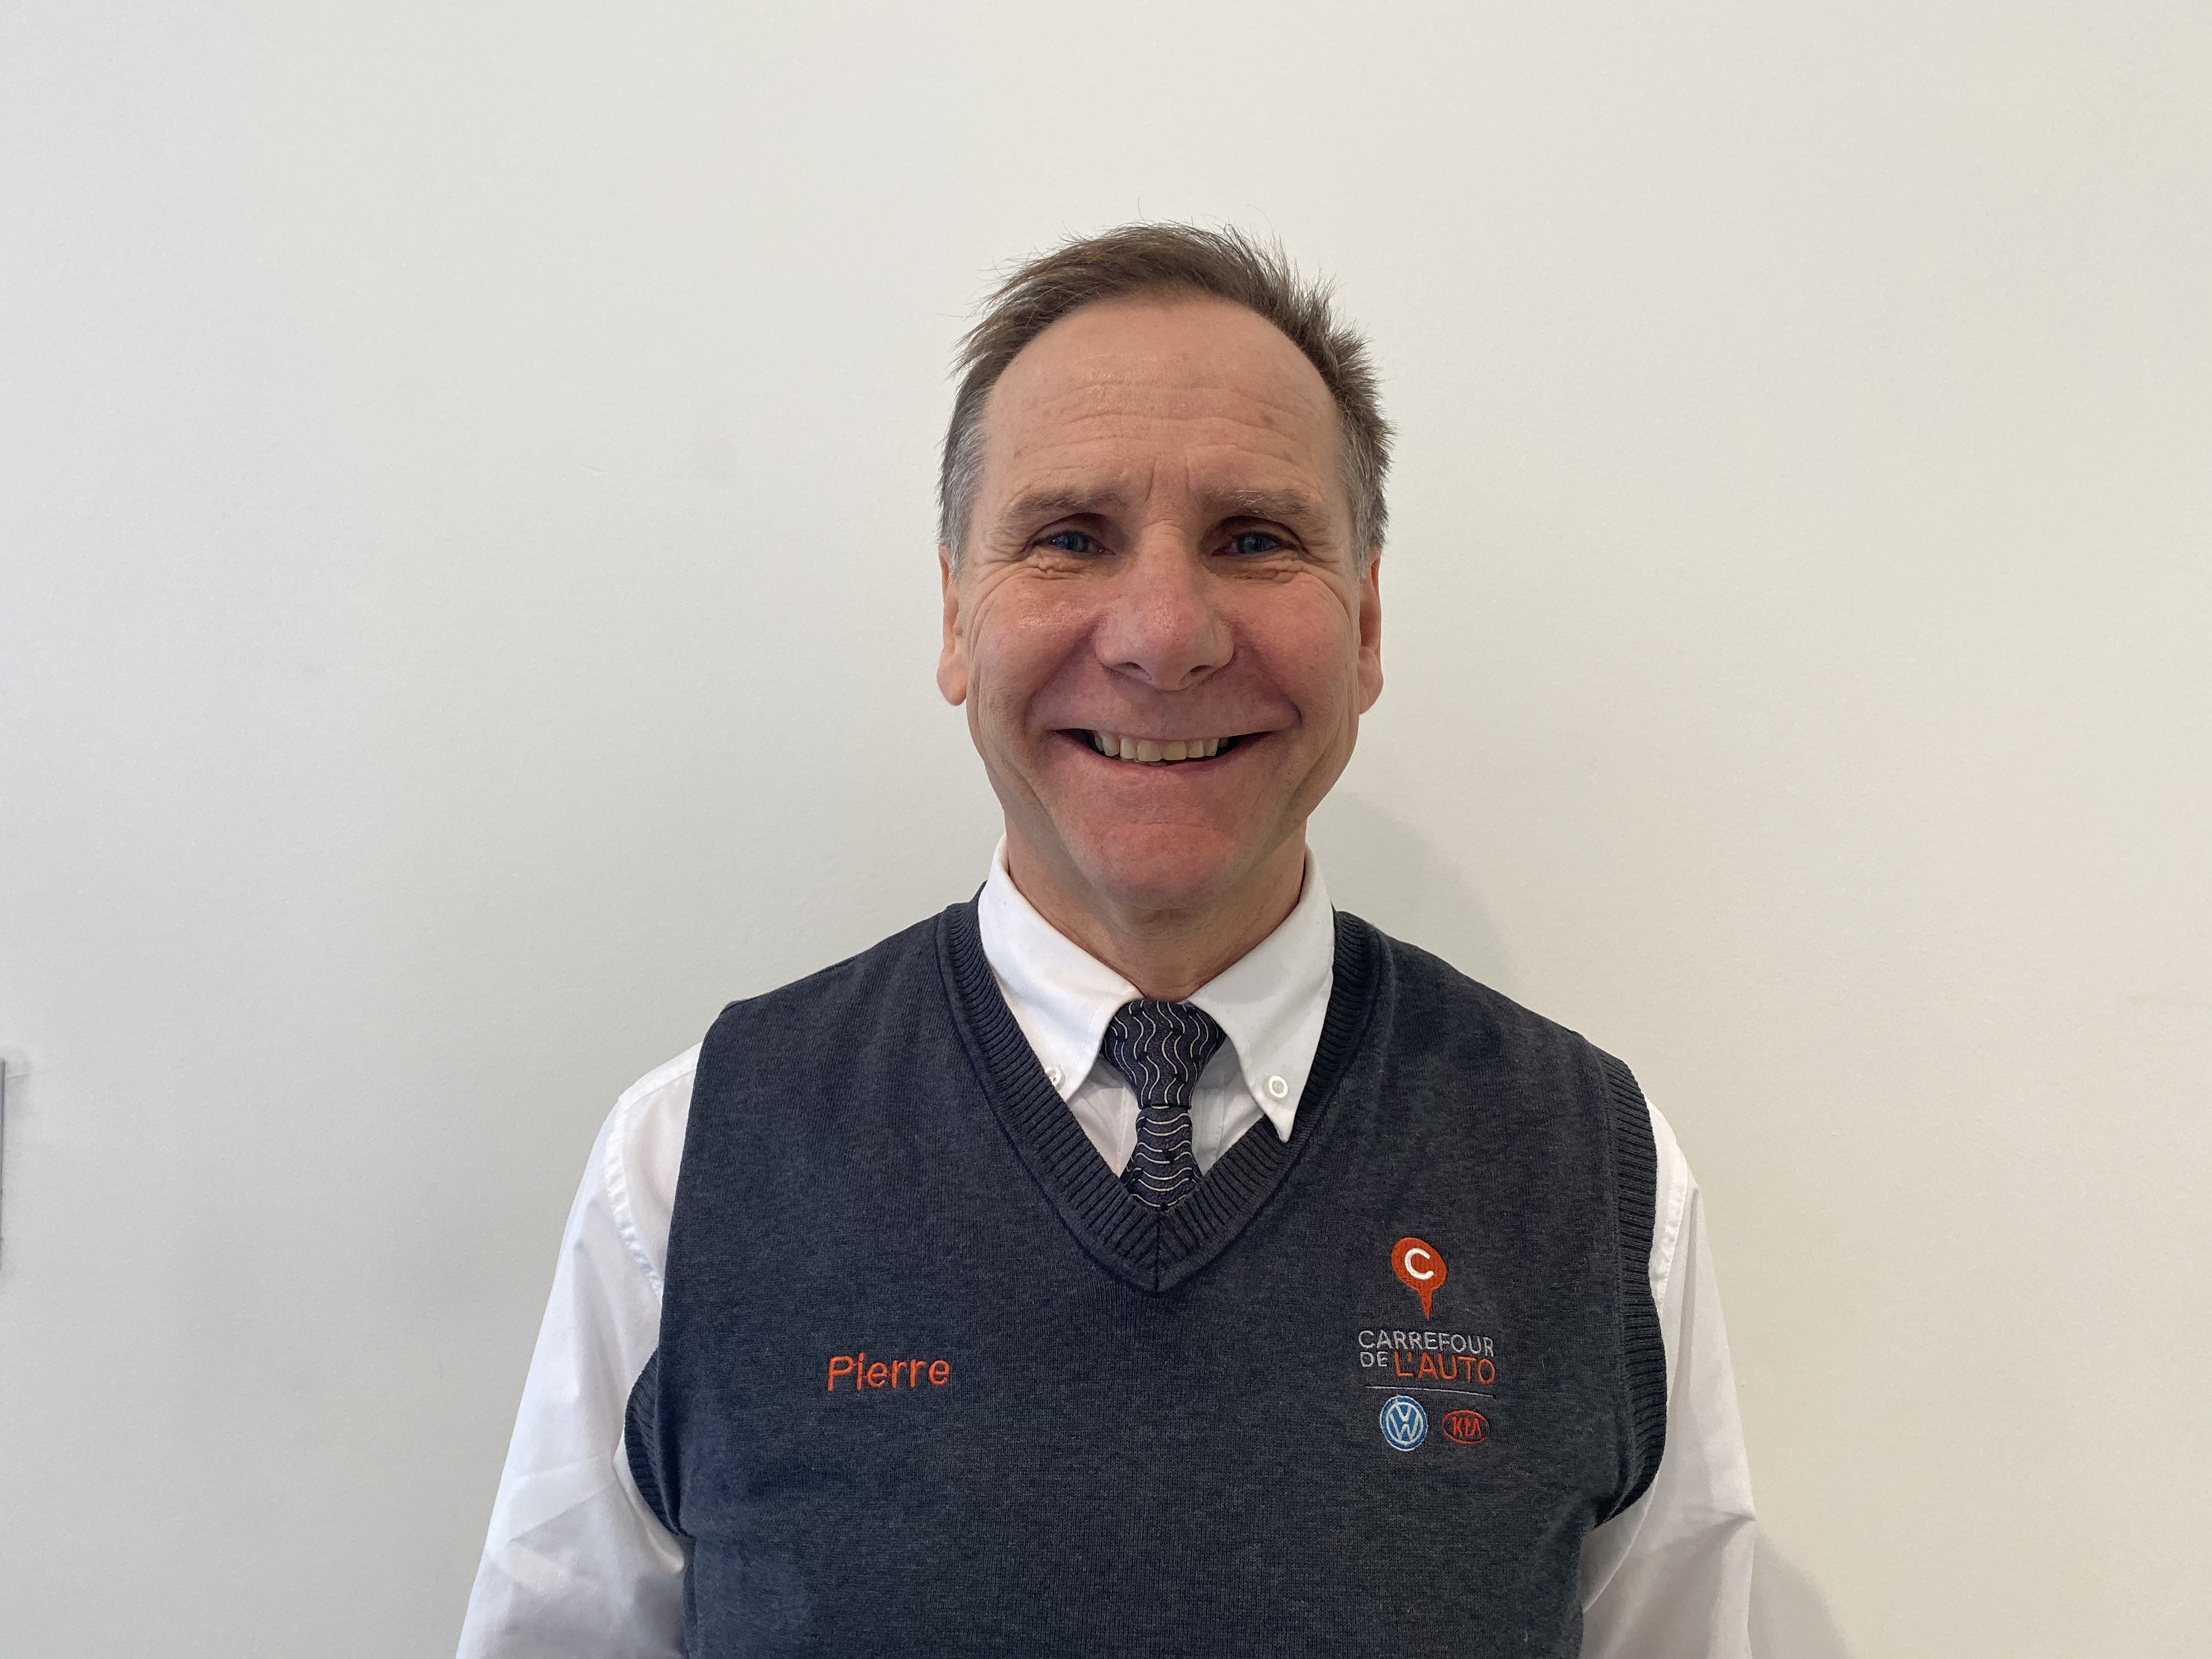 Pierre Caissy - Service manager